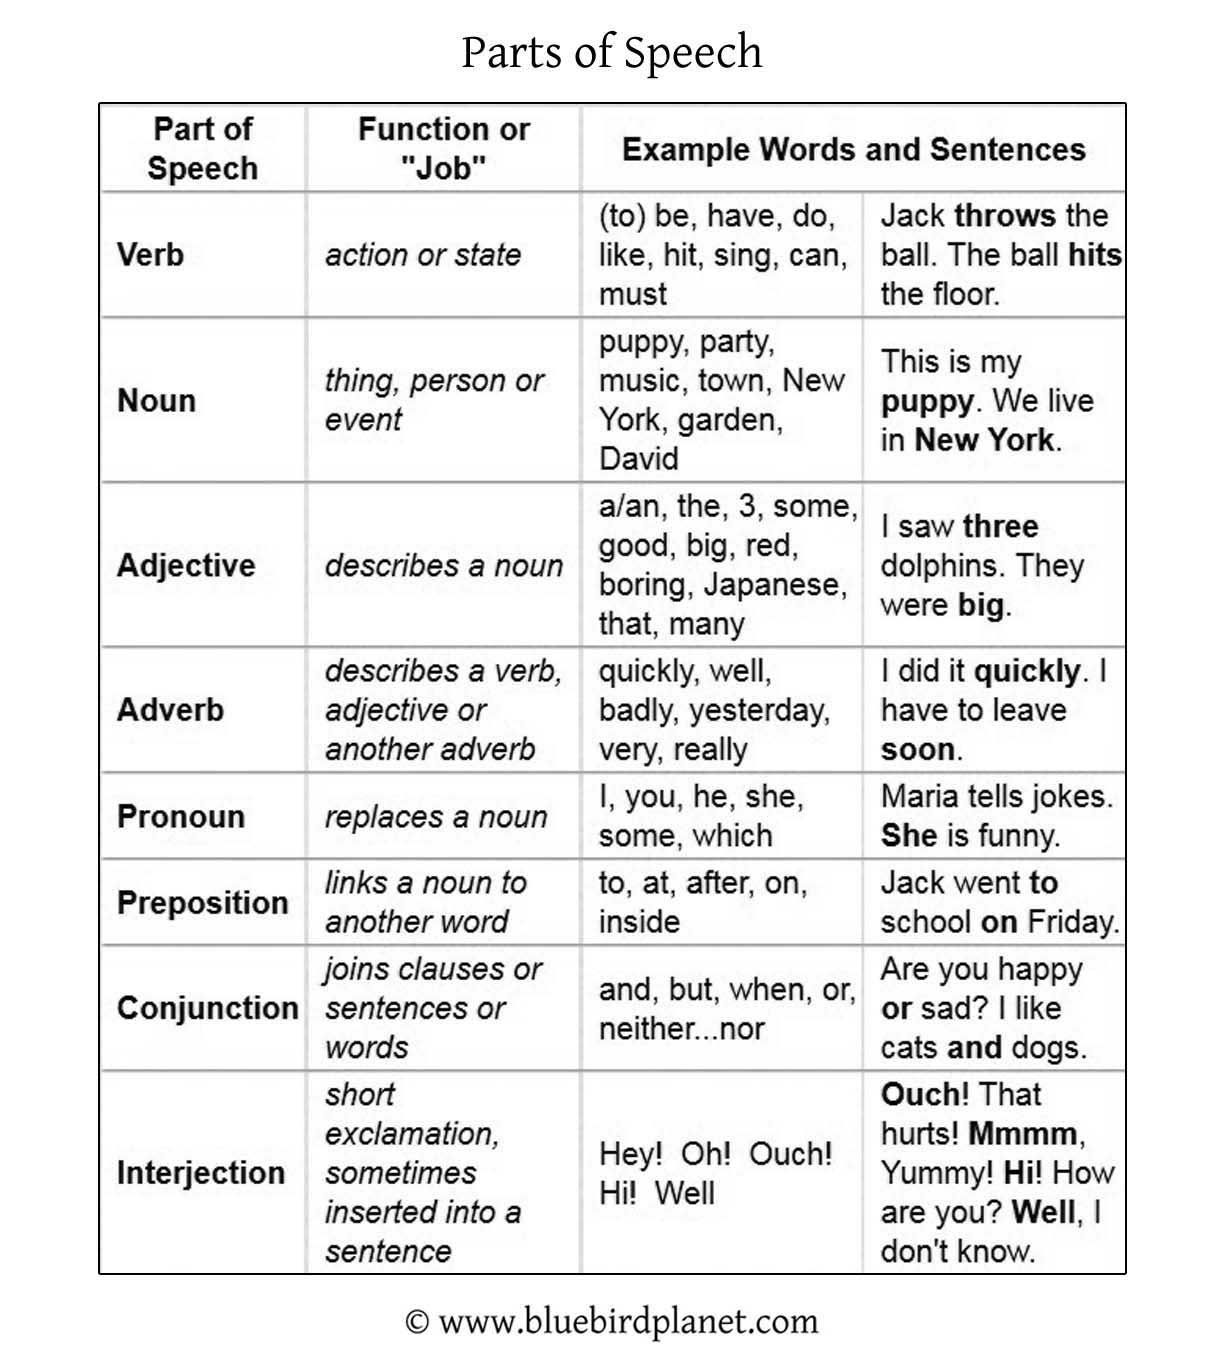 Parts Of Speech Table Parts Of Speech Worksheets Parts Of Speech English Vocabulary Words Learning Identifying parts of speech worksheets